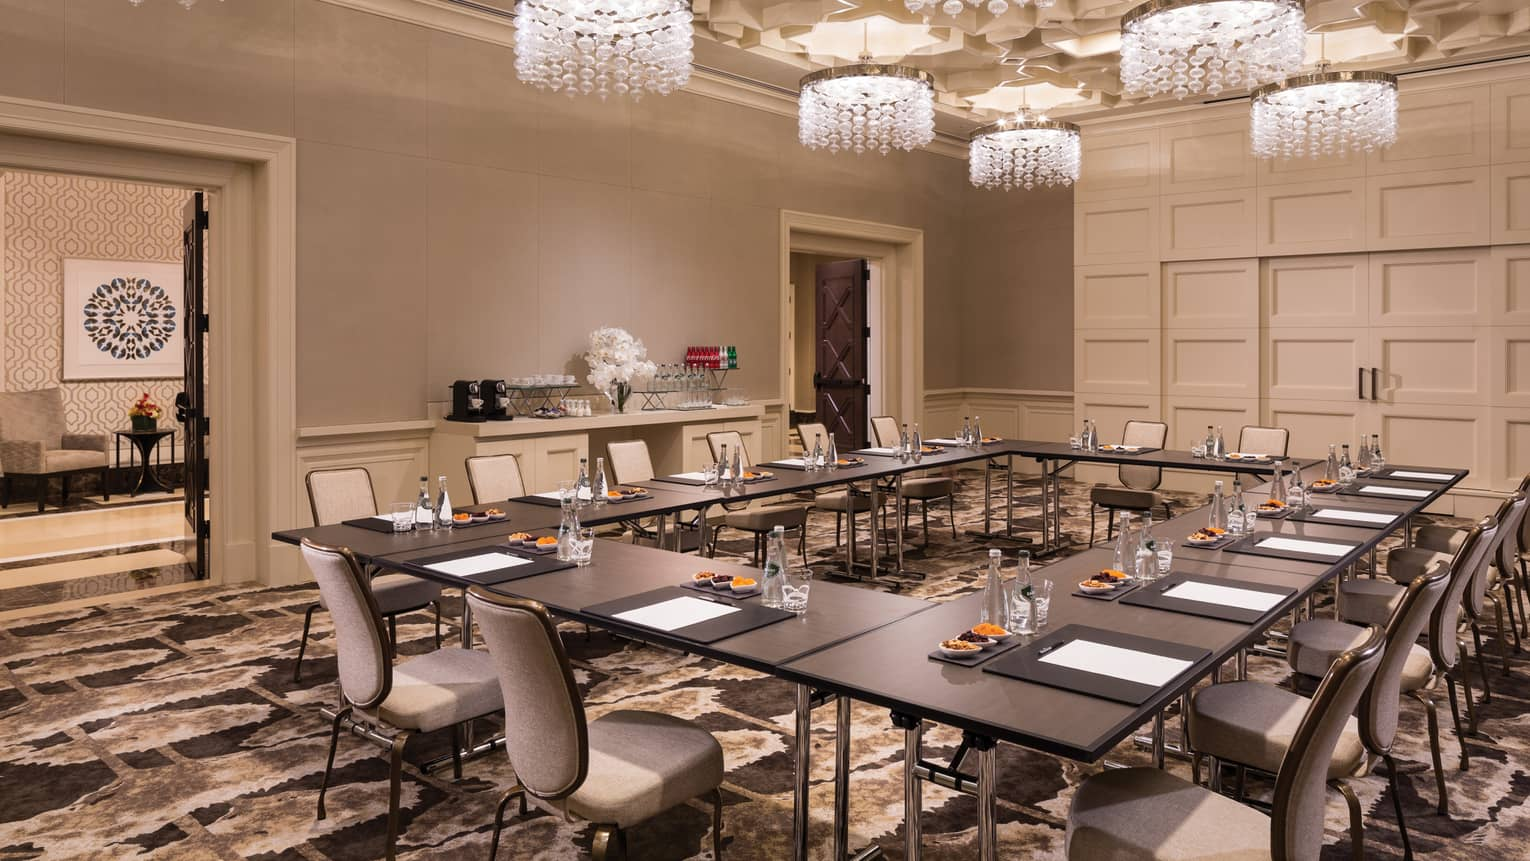 Fox Tail Hollow room with modular meeting table under small crystal chandeliers